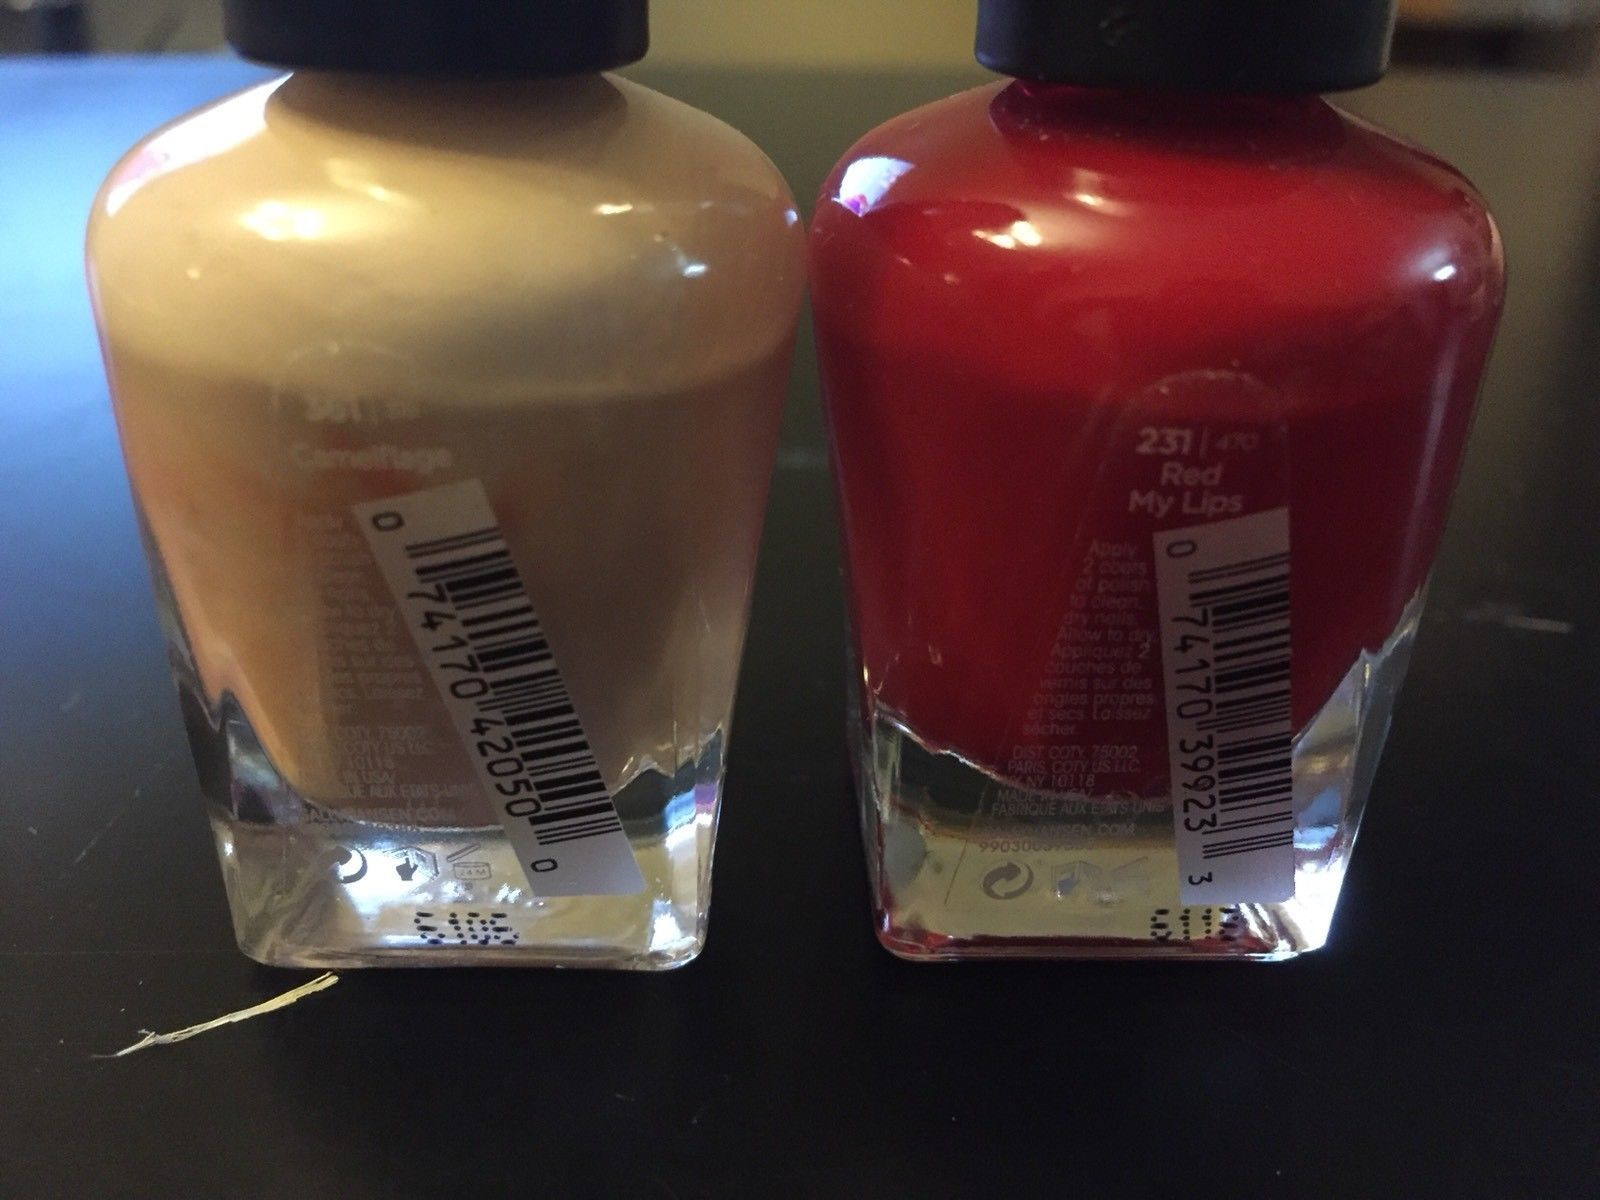 2 New Sally Hansen Salon Manicure Nail Polish .5 Fl Oz Camelflage & Red My Lips